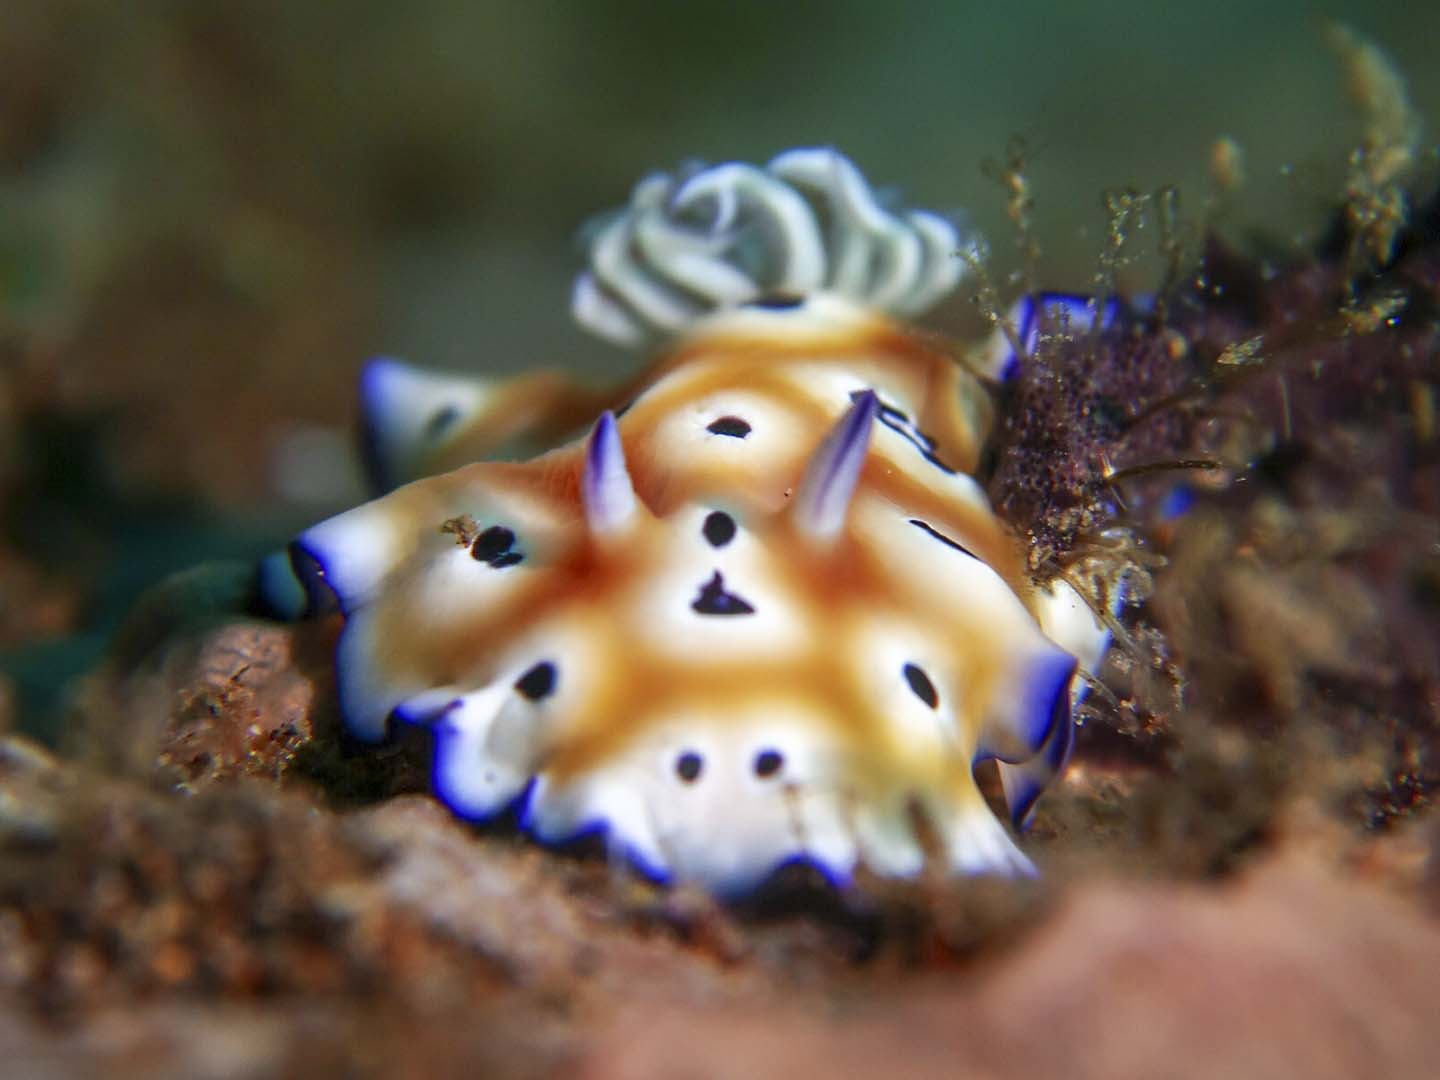 This nudibranch, Goniobranchus kuniei spotted while scuba diving in Dauin, Negros Oriental